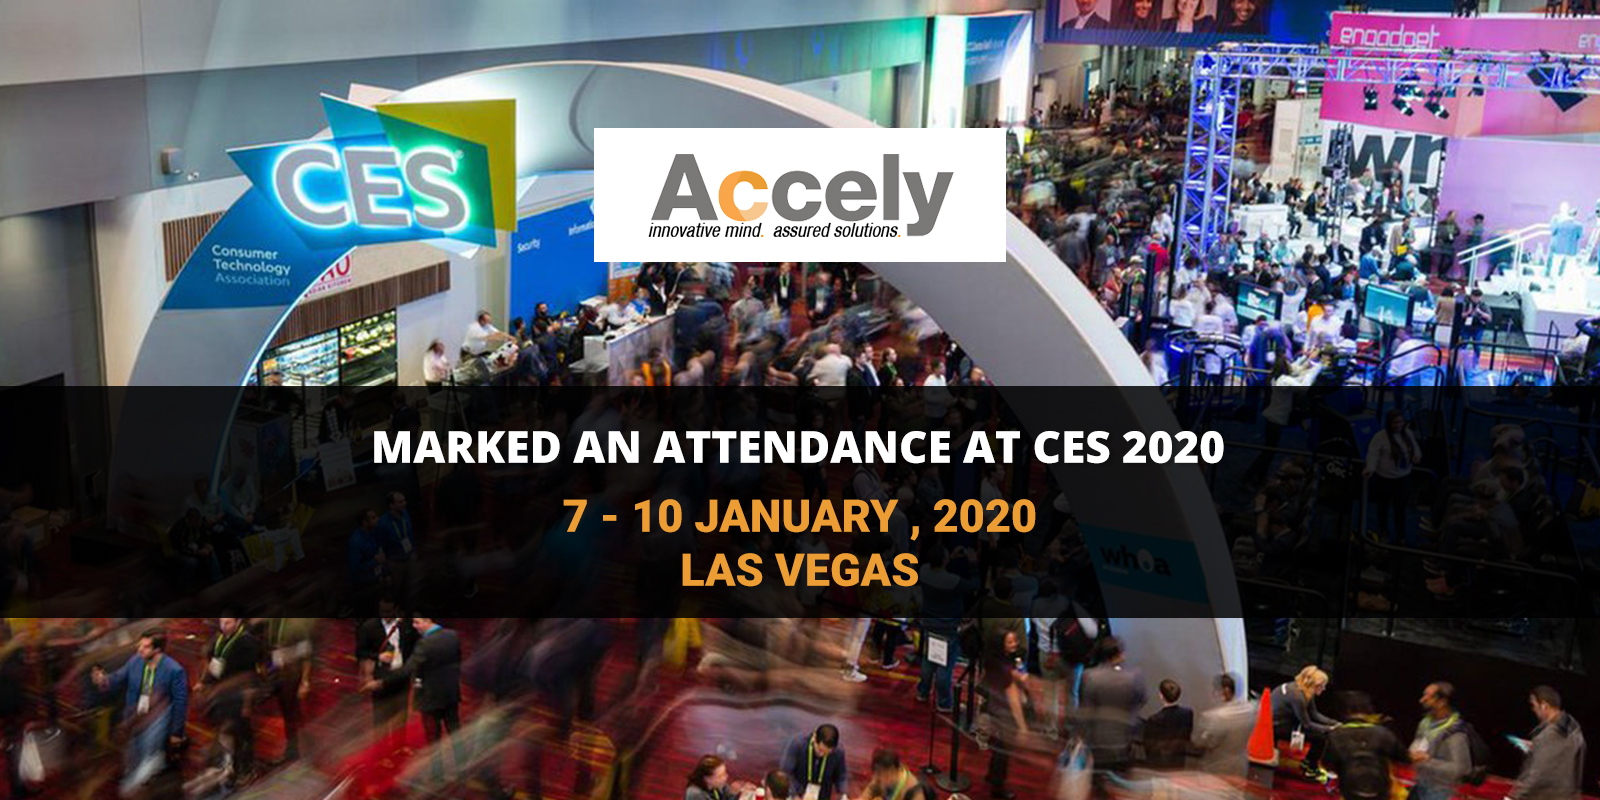 Accely Participated an Attendance at CES 2020